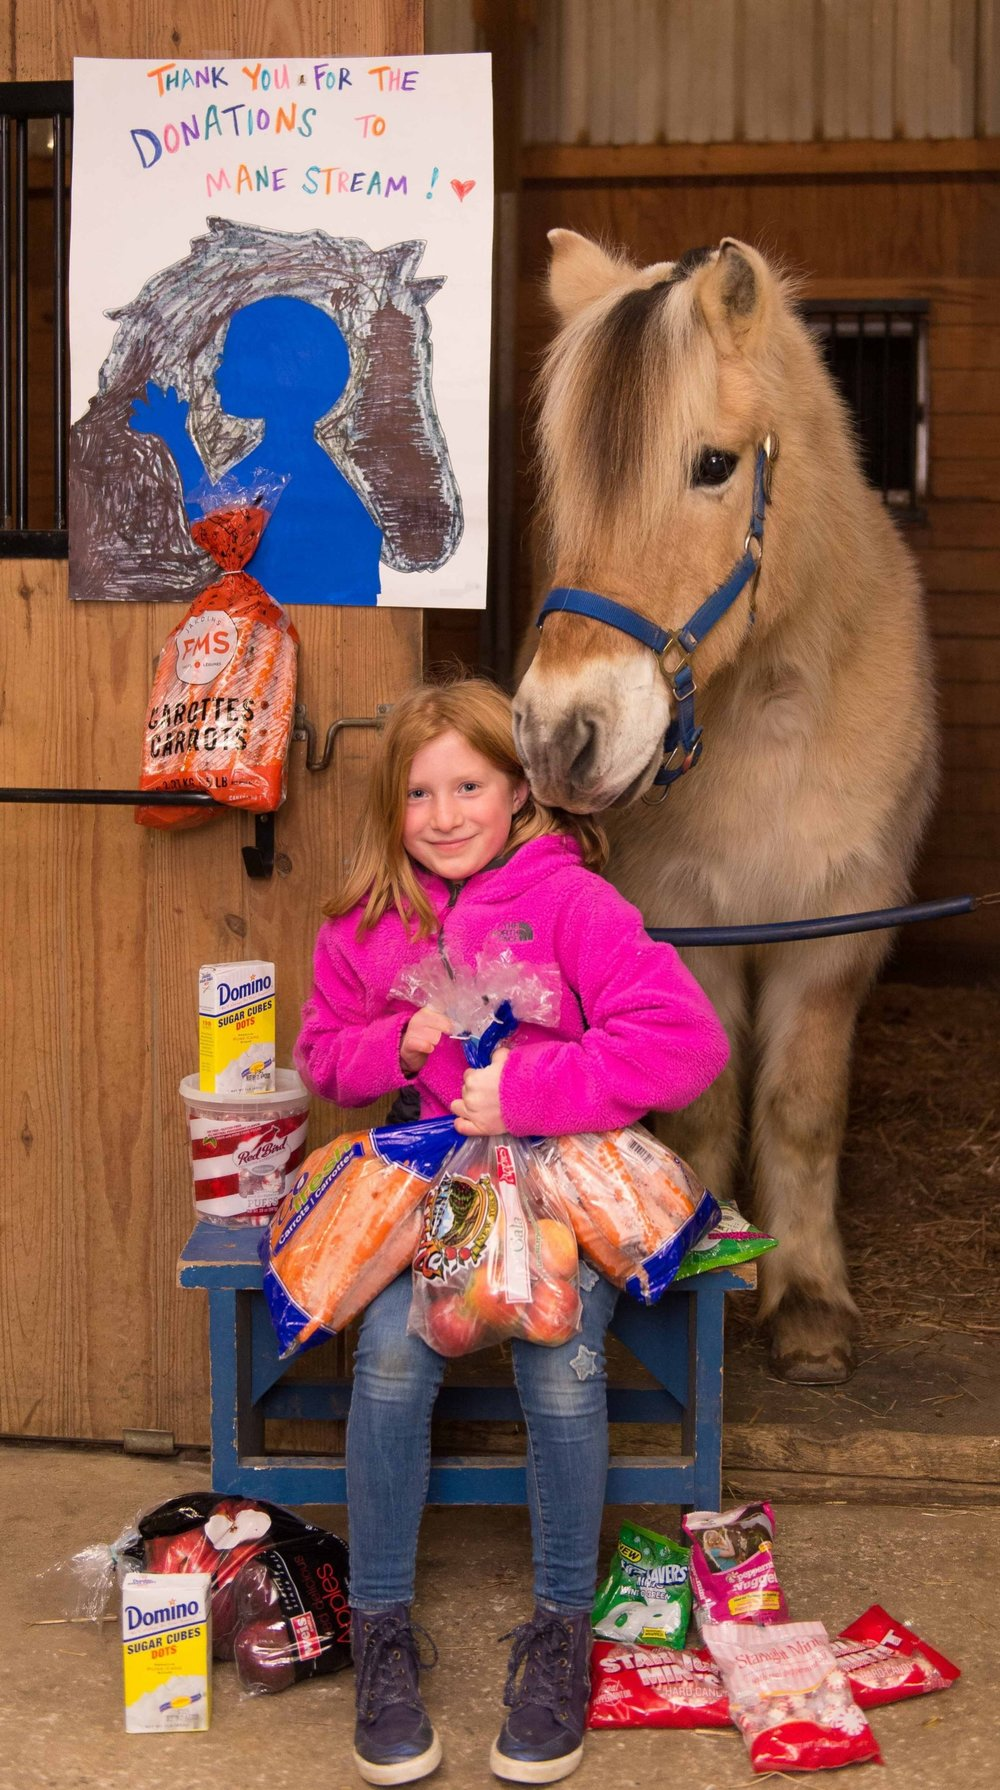 Ian, Abigail's favorite MS horse, can't wait to tuck into this sweet buffet!